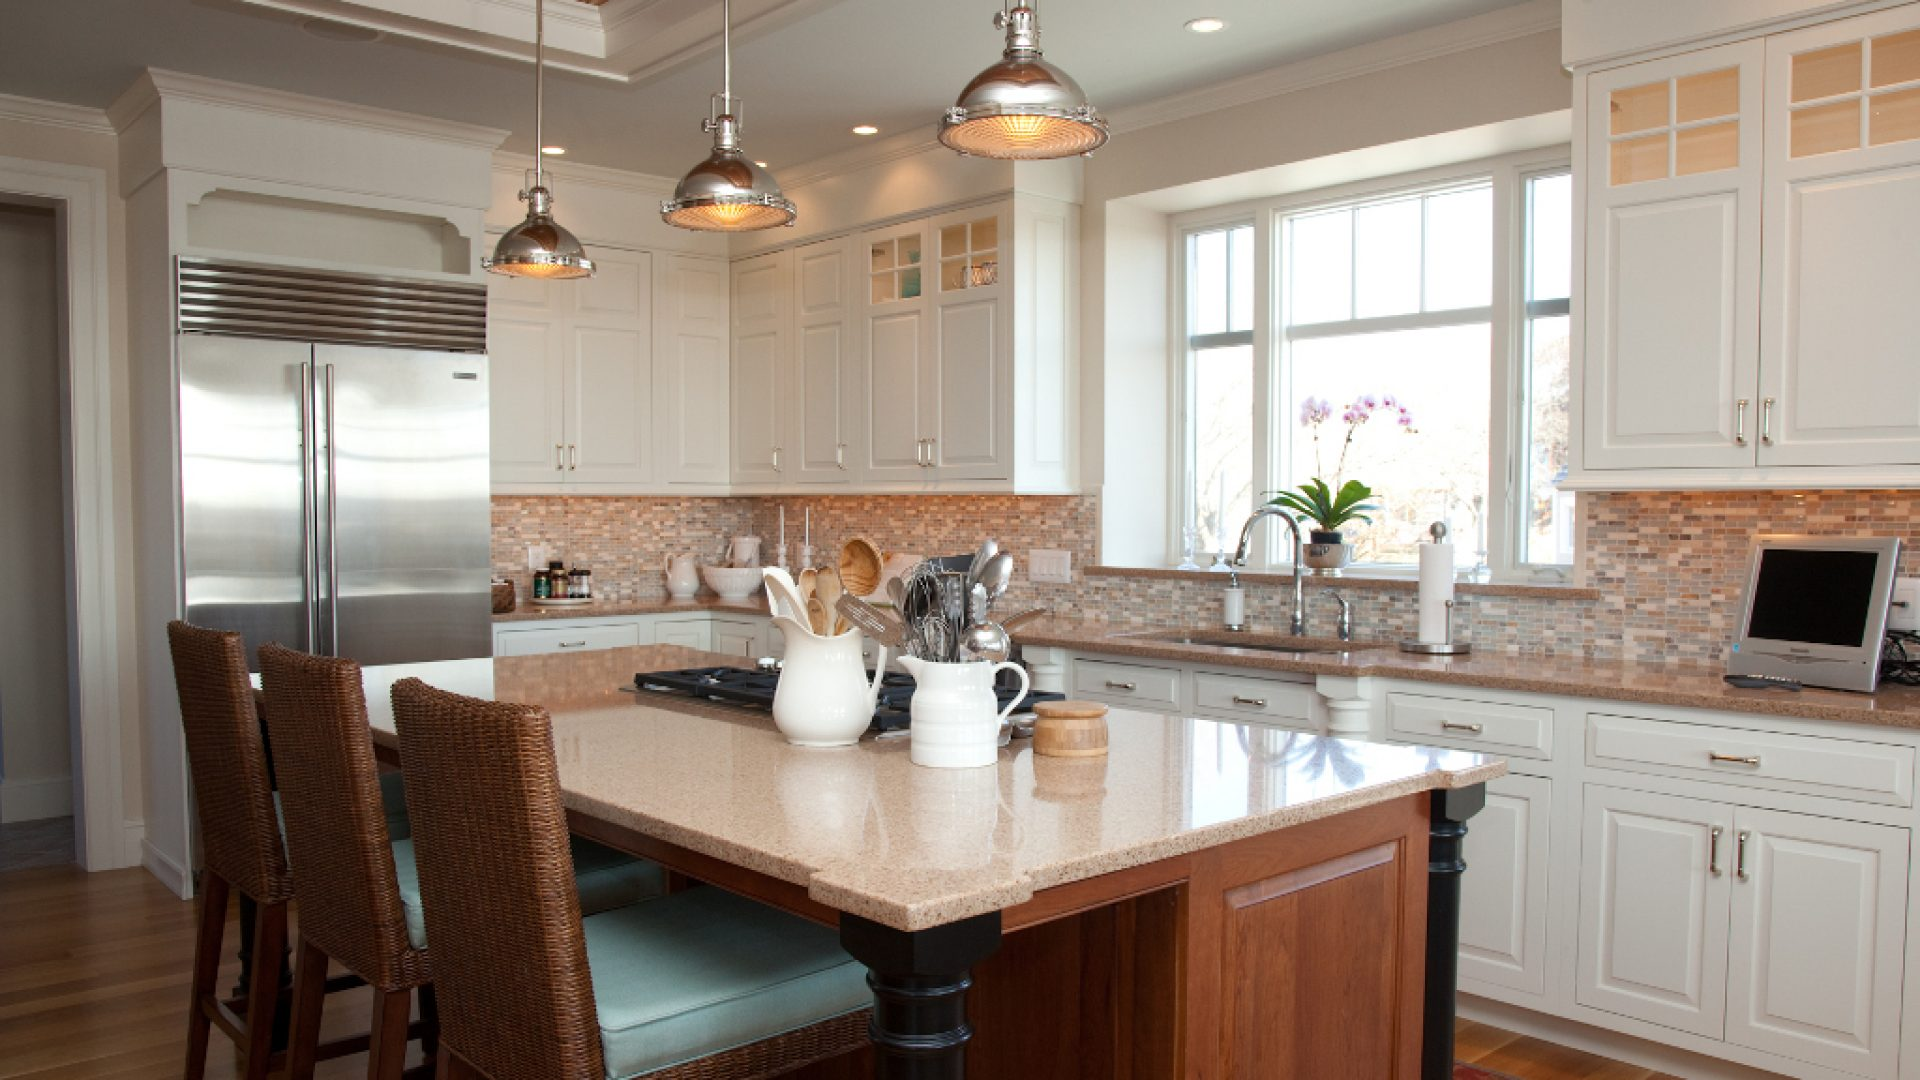 The Countertop Stop The Countertop Stop Serves Cape Cod The Islands With Countertops And Cabinetry For Your Kitchen Bathroom Or Office Space Call 508 394 6700 For A Quote Today